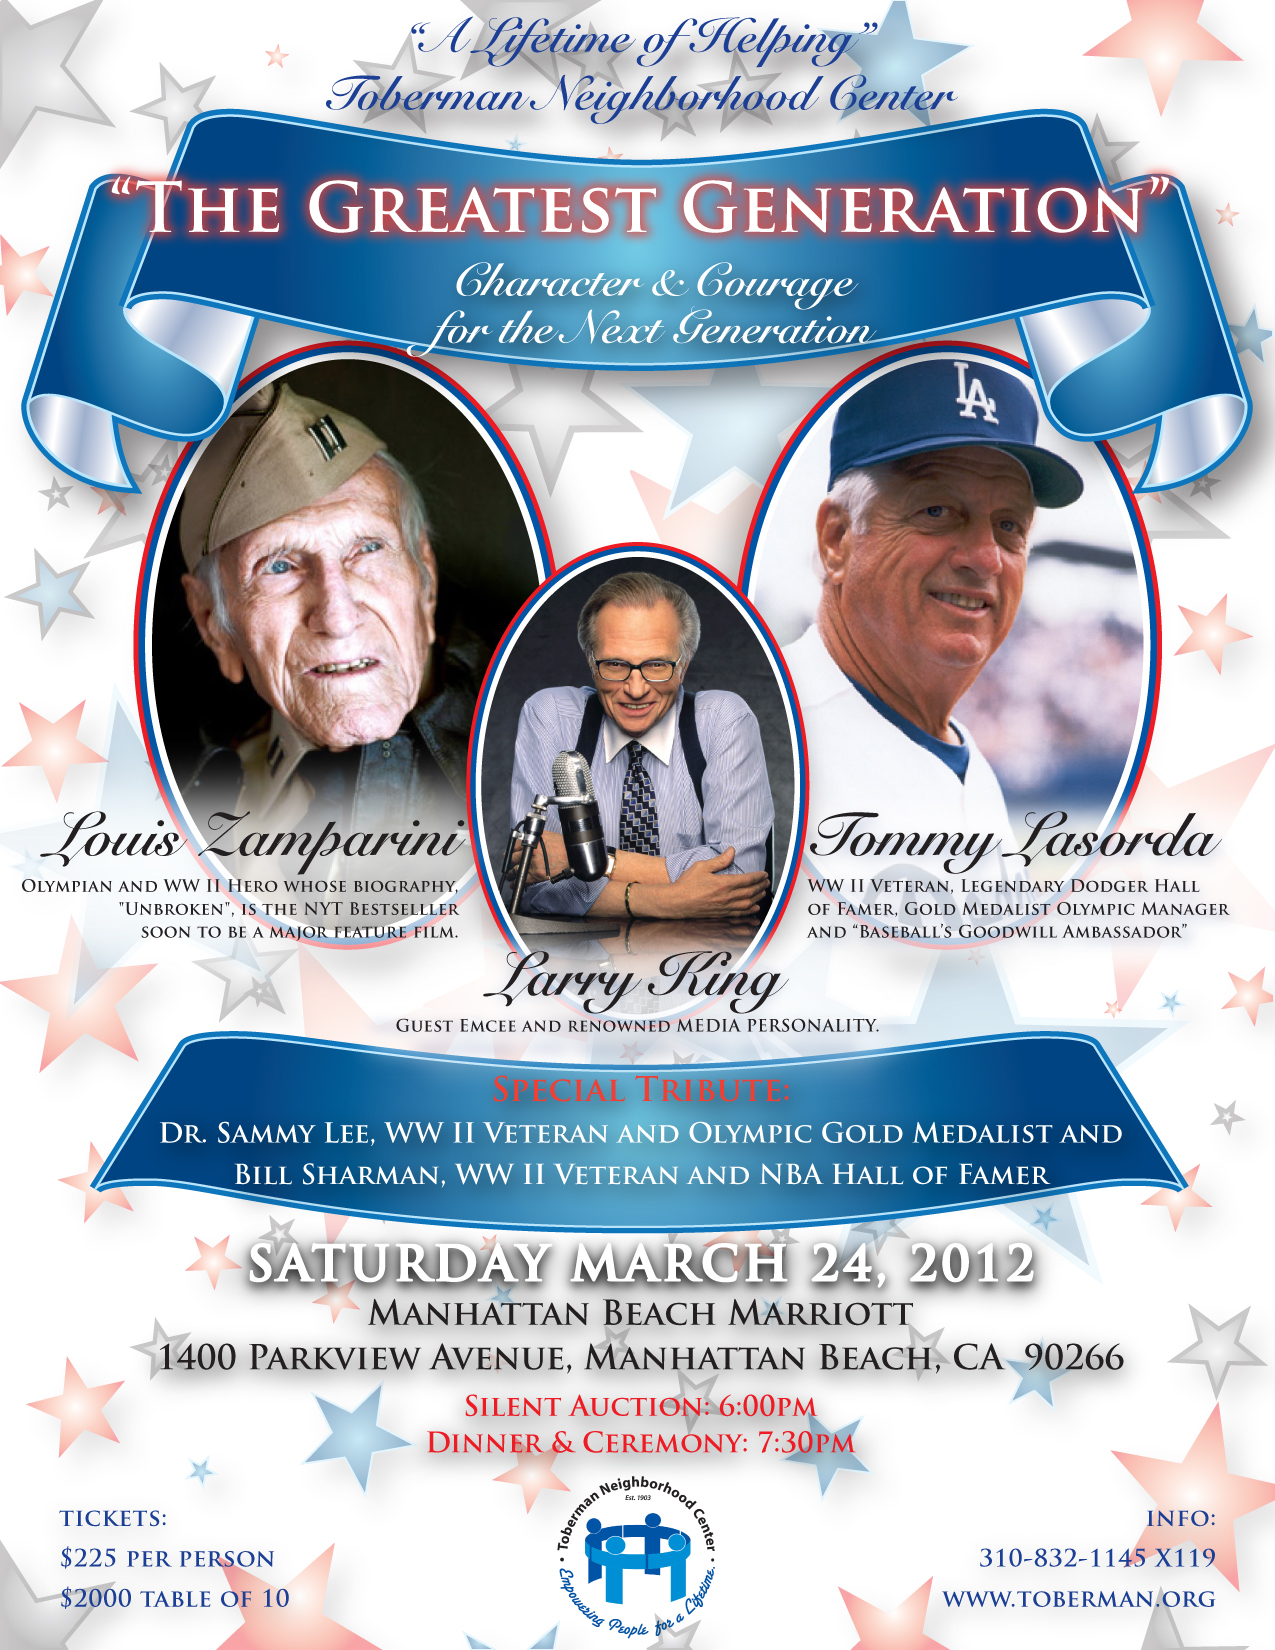 The Greatest Generation event